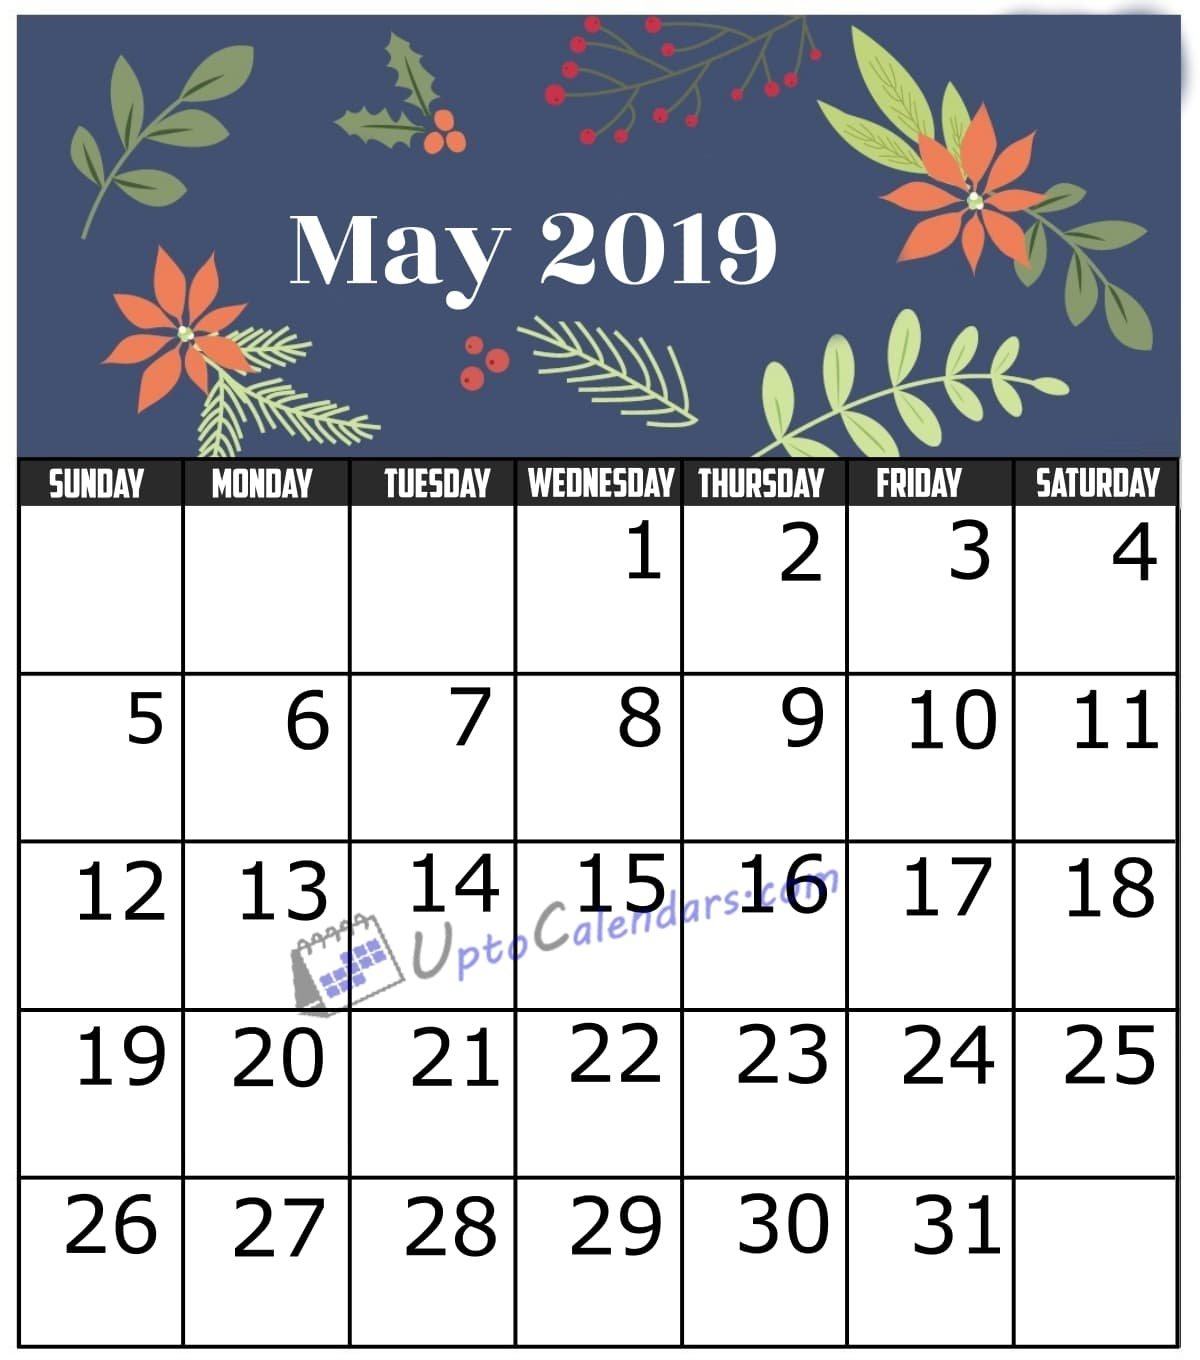 May 2019 Calendar Printable Template With Holidays Pdf Word Excel May 2 2019 Calendar